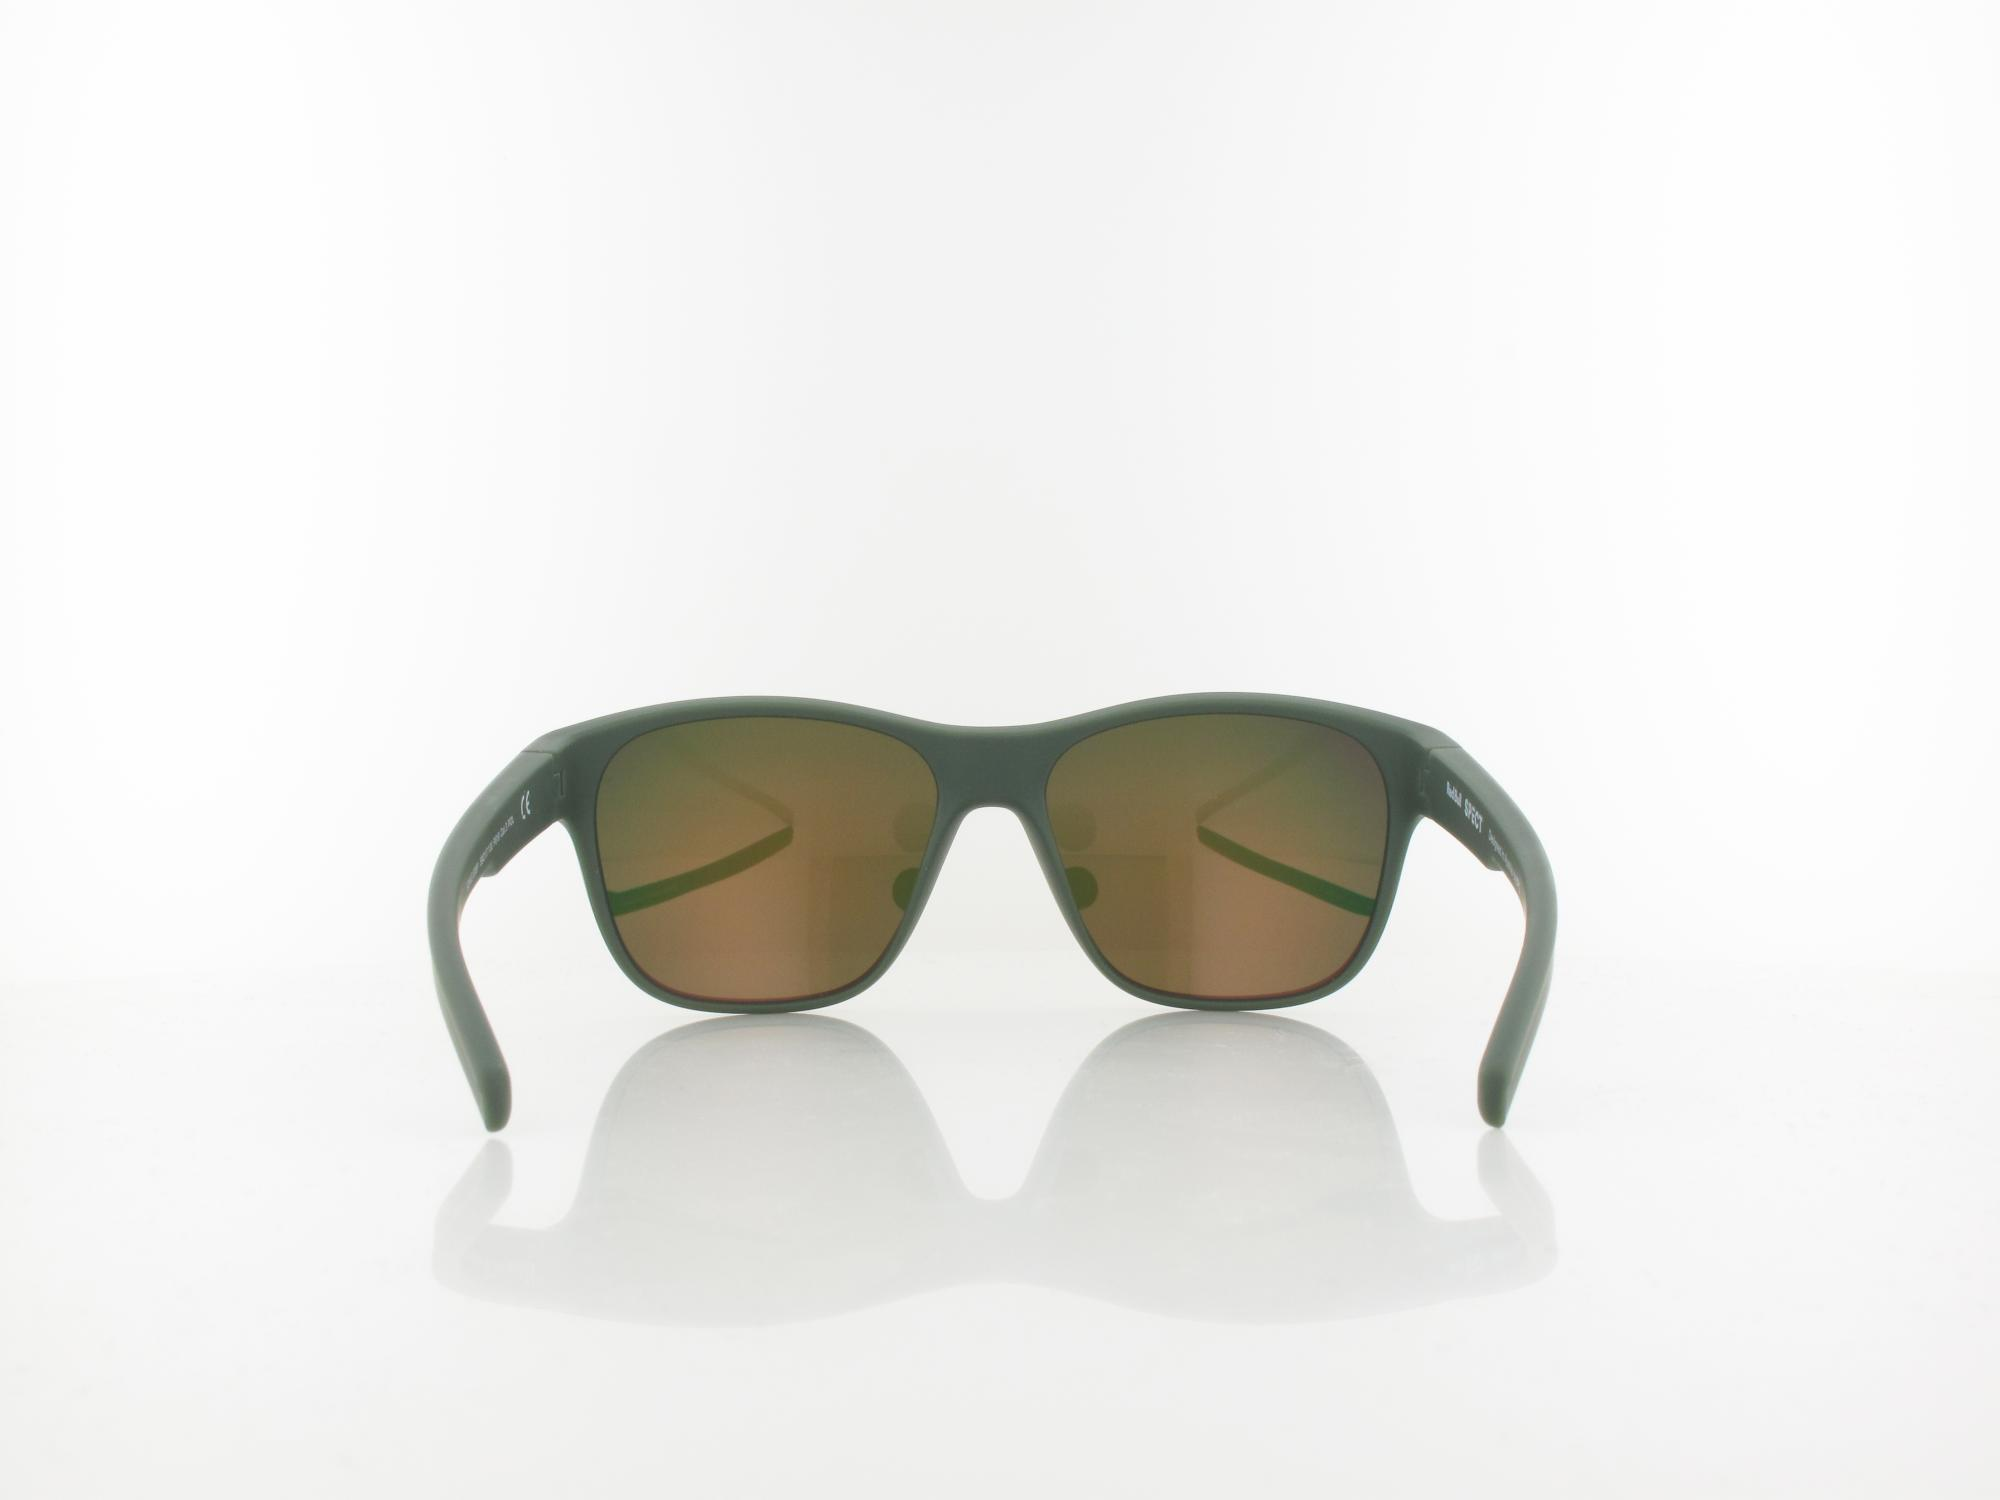 Red Bull SPECT | SONIC 006P 59 | olive green / brown with red mirror pol